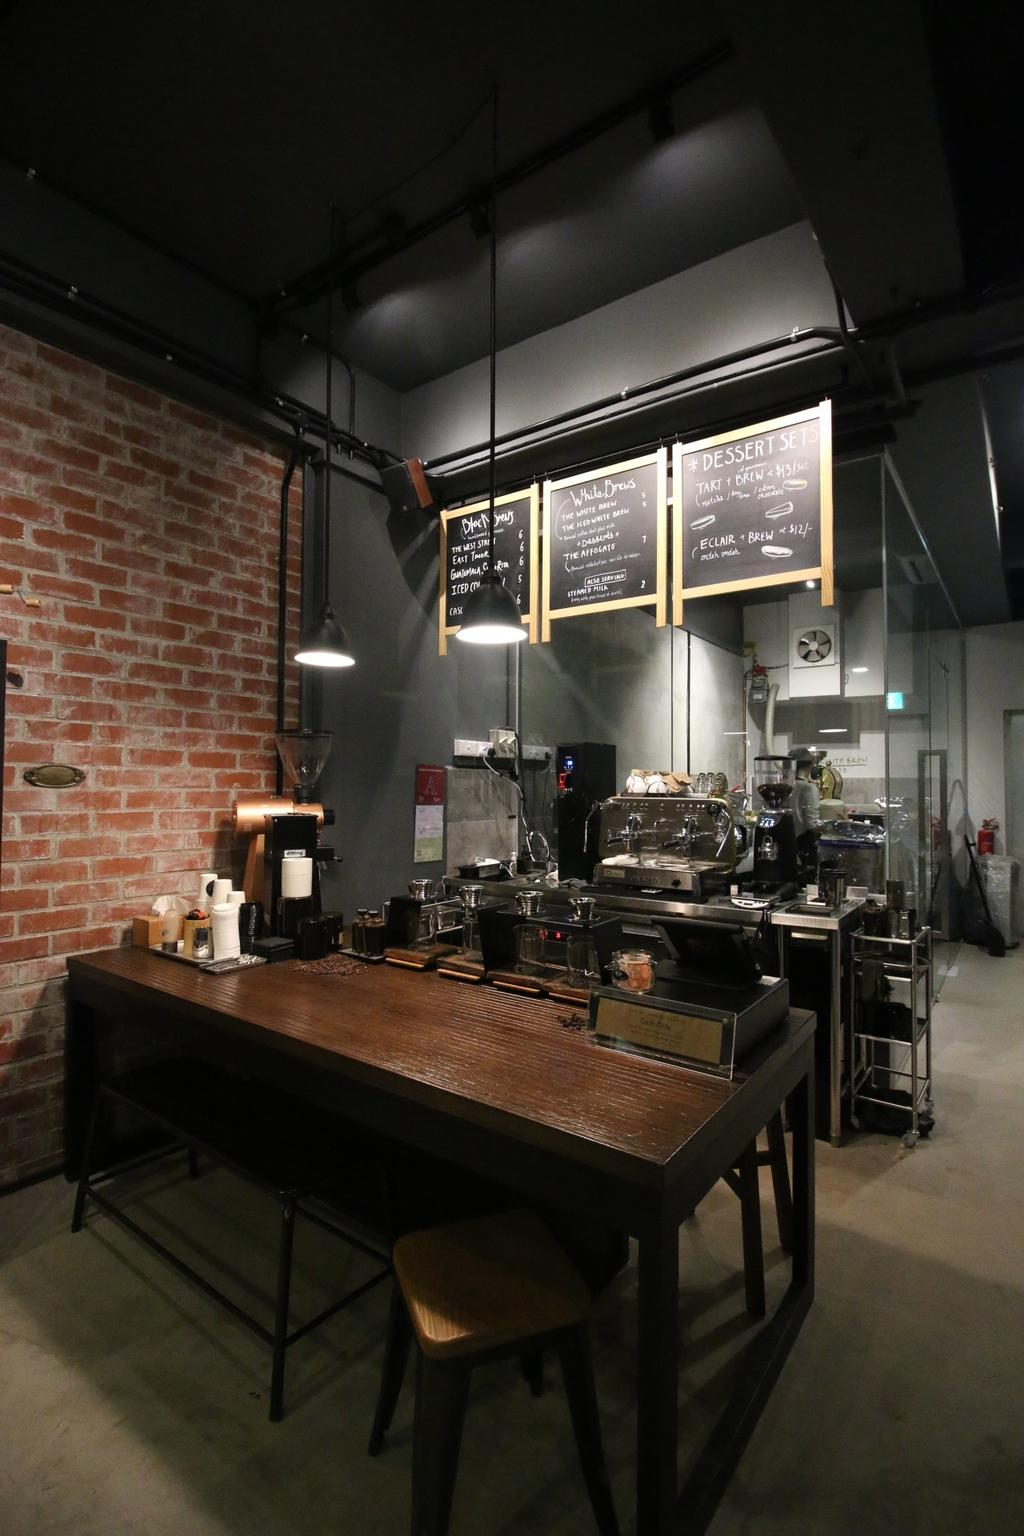 The Tiny Roaster, Commercial, Interior Designer, ChanInteriors, Industrial, Appliance, Electrical Device, Oven